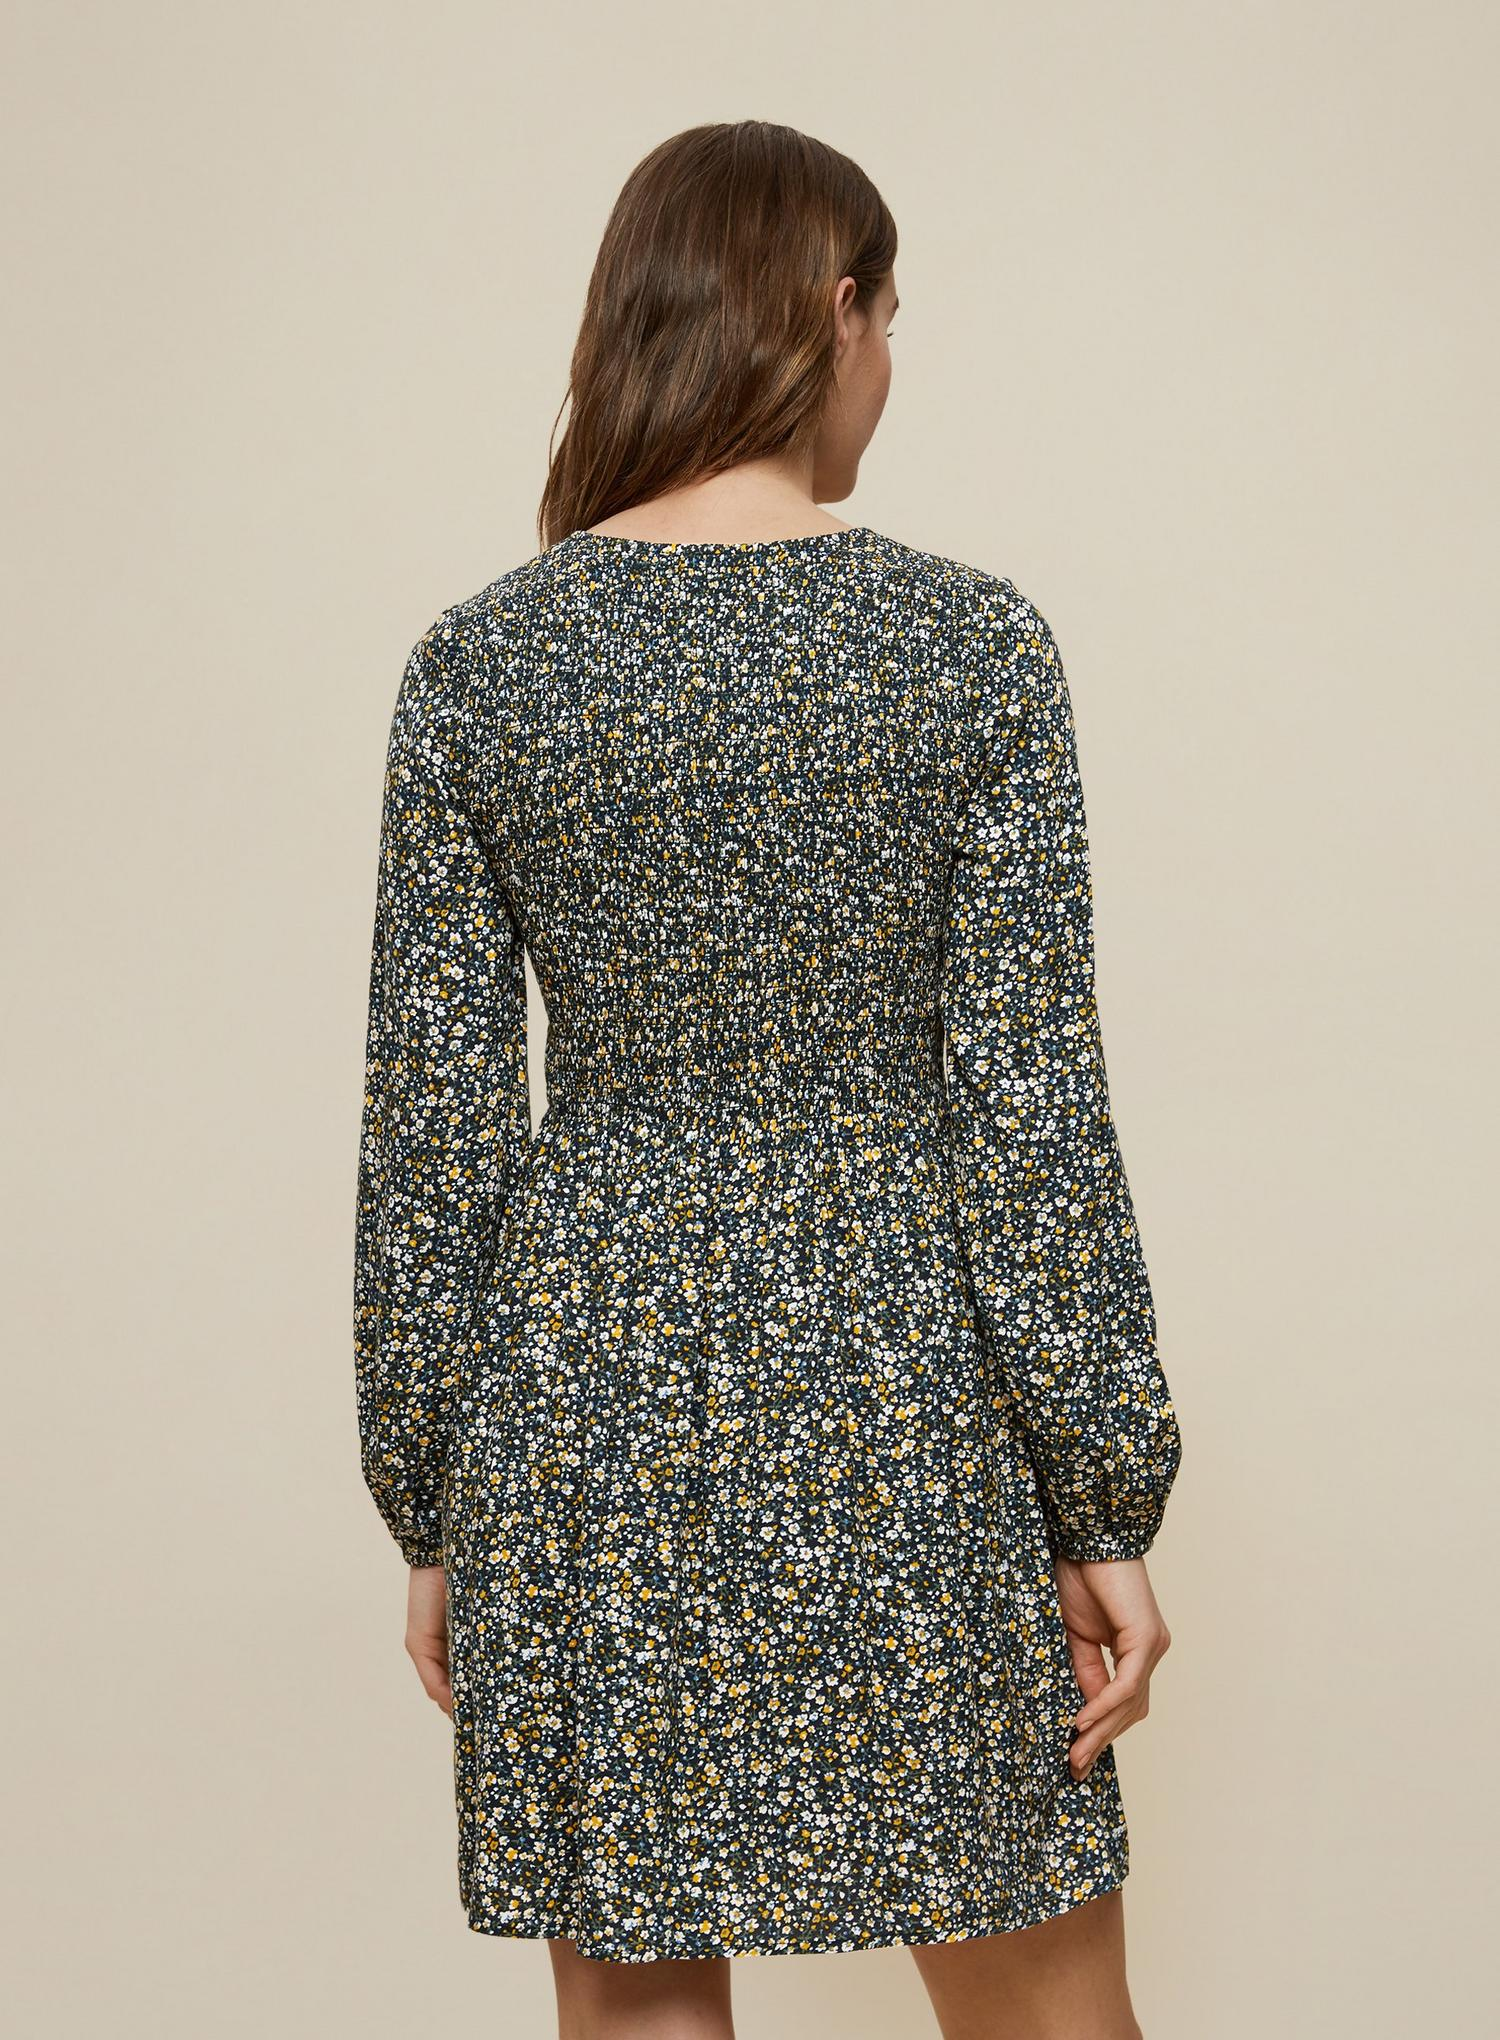 144 Green Ditsy Print Sheered Sleeve Dress image number 2